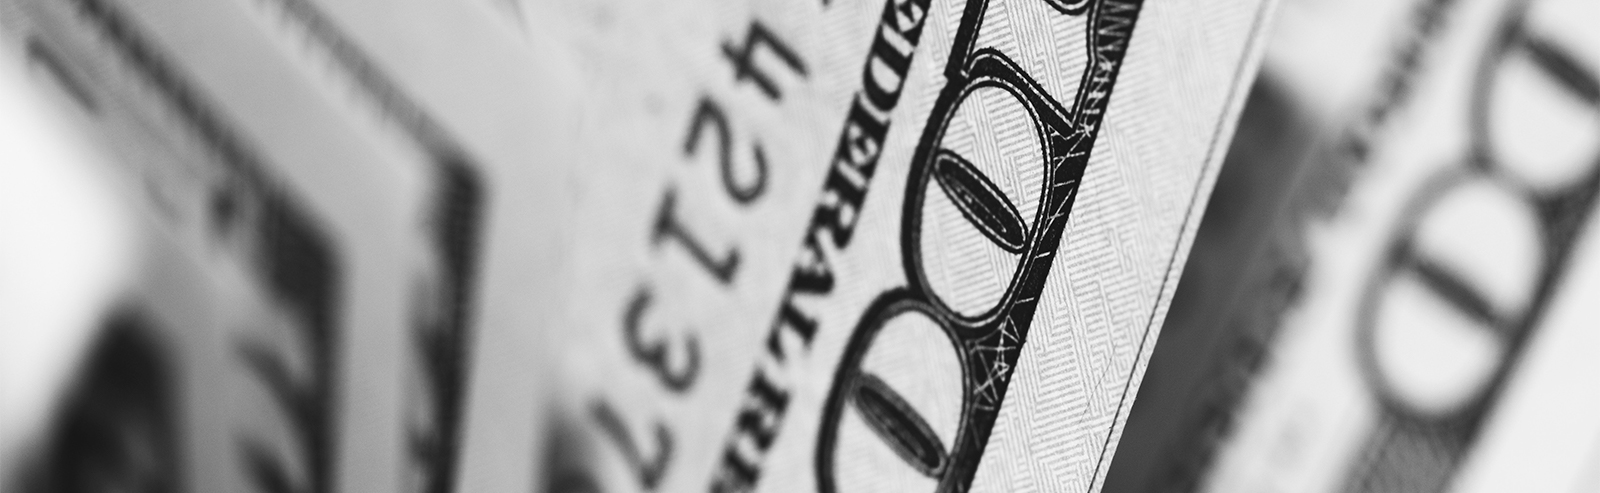 black and white image of fanned money